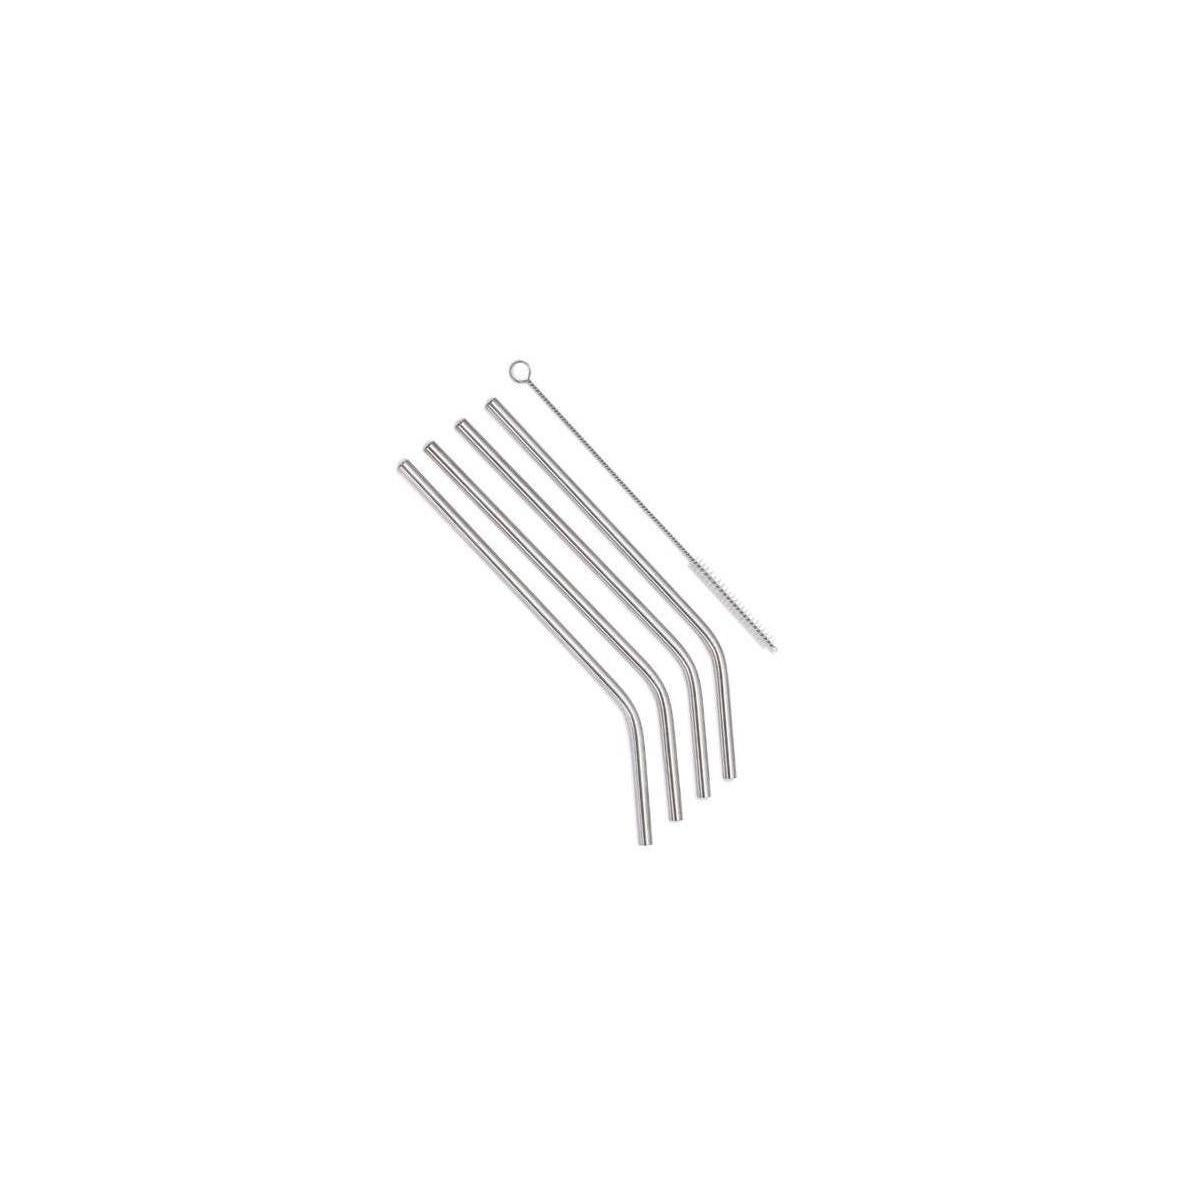 Nicely Neat Stainless Steel Drinking Straws with Cleaning Brush, Set of 4, 8.5 Inches, Bent Shape